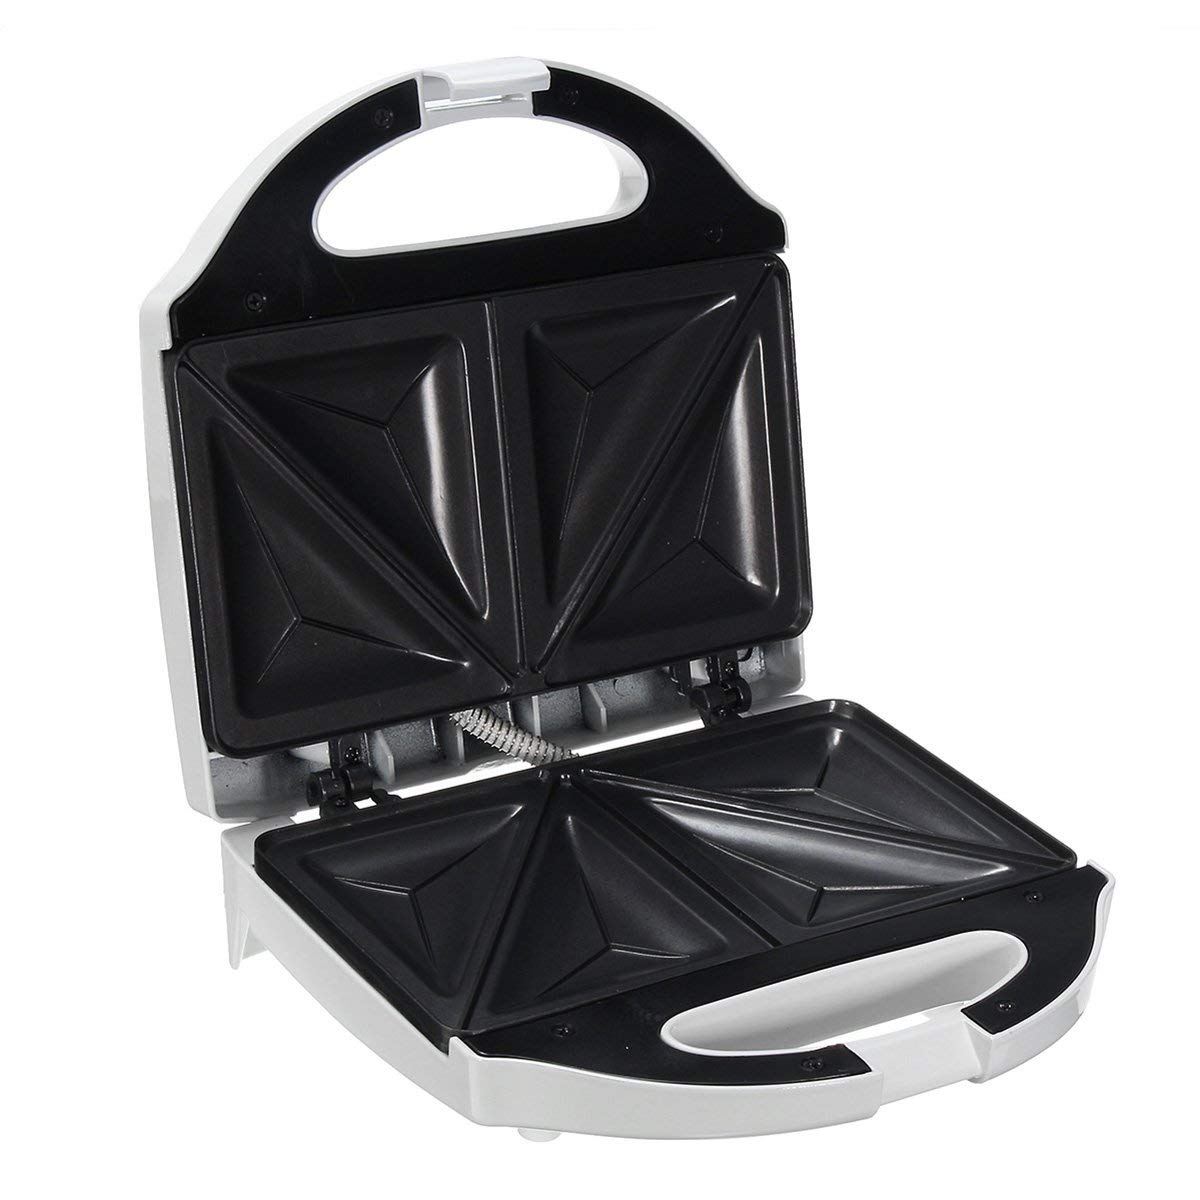 Cucinapro Multi-baker With Interchangeable Plates Cheap Toaster Grill Sandwich Maker Find Toaster Grill Sandwich